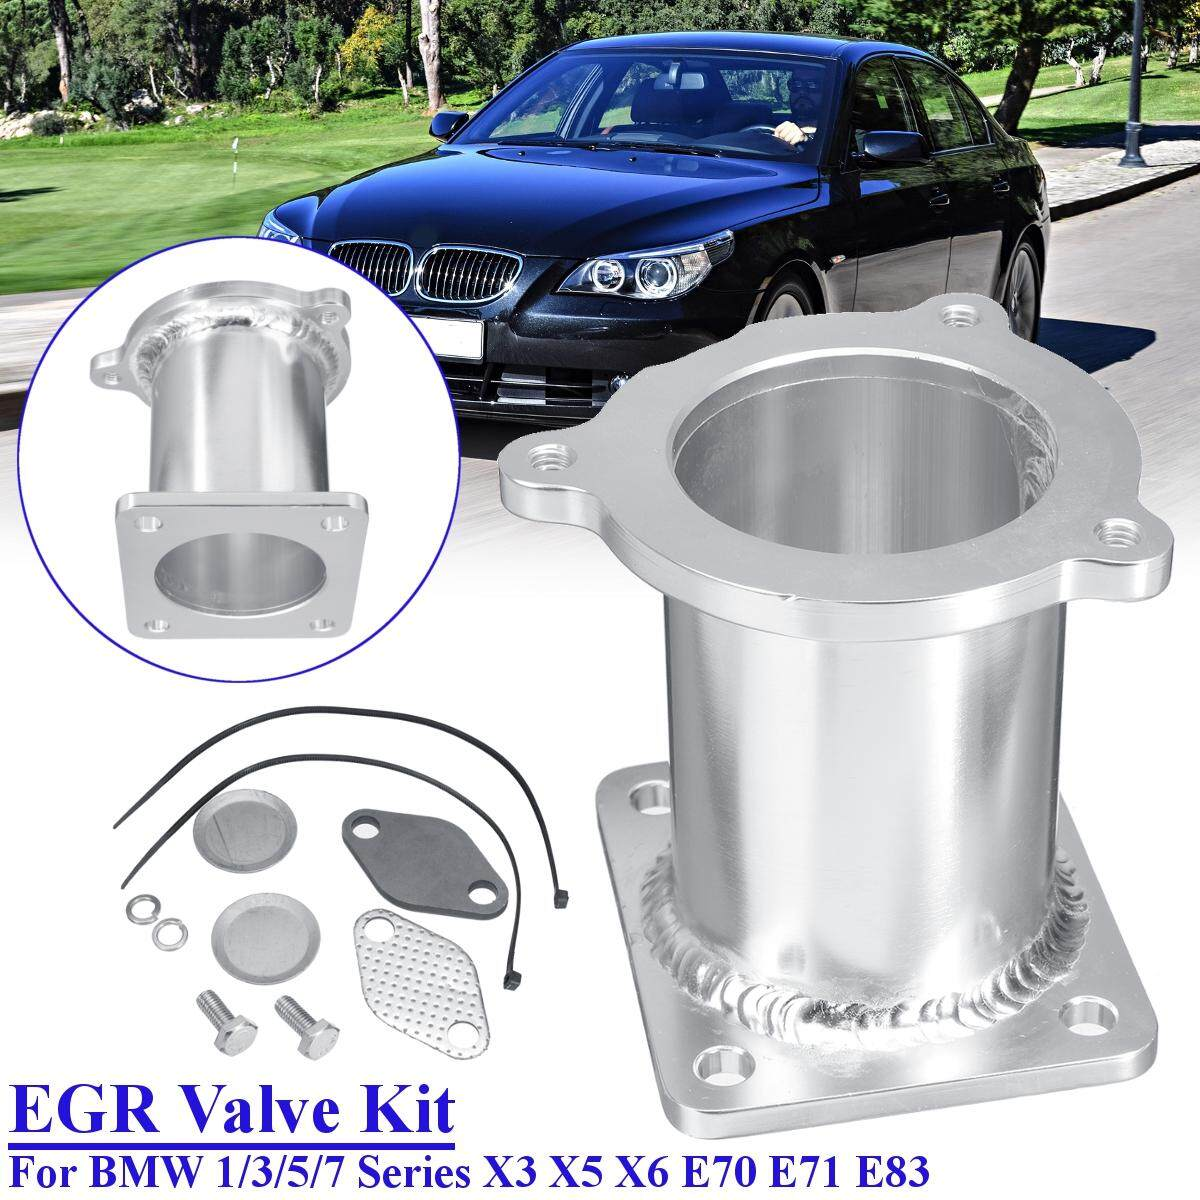 EGR Valve Kit For BMW 1/3/5/7 Series X3 X5 X6 E70 E71 E83